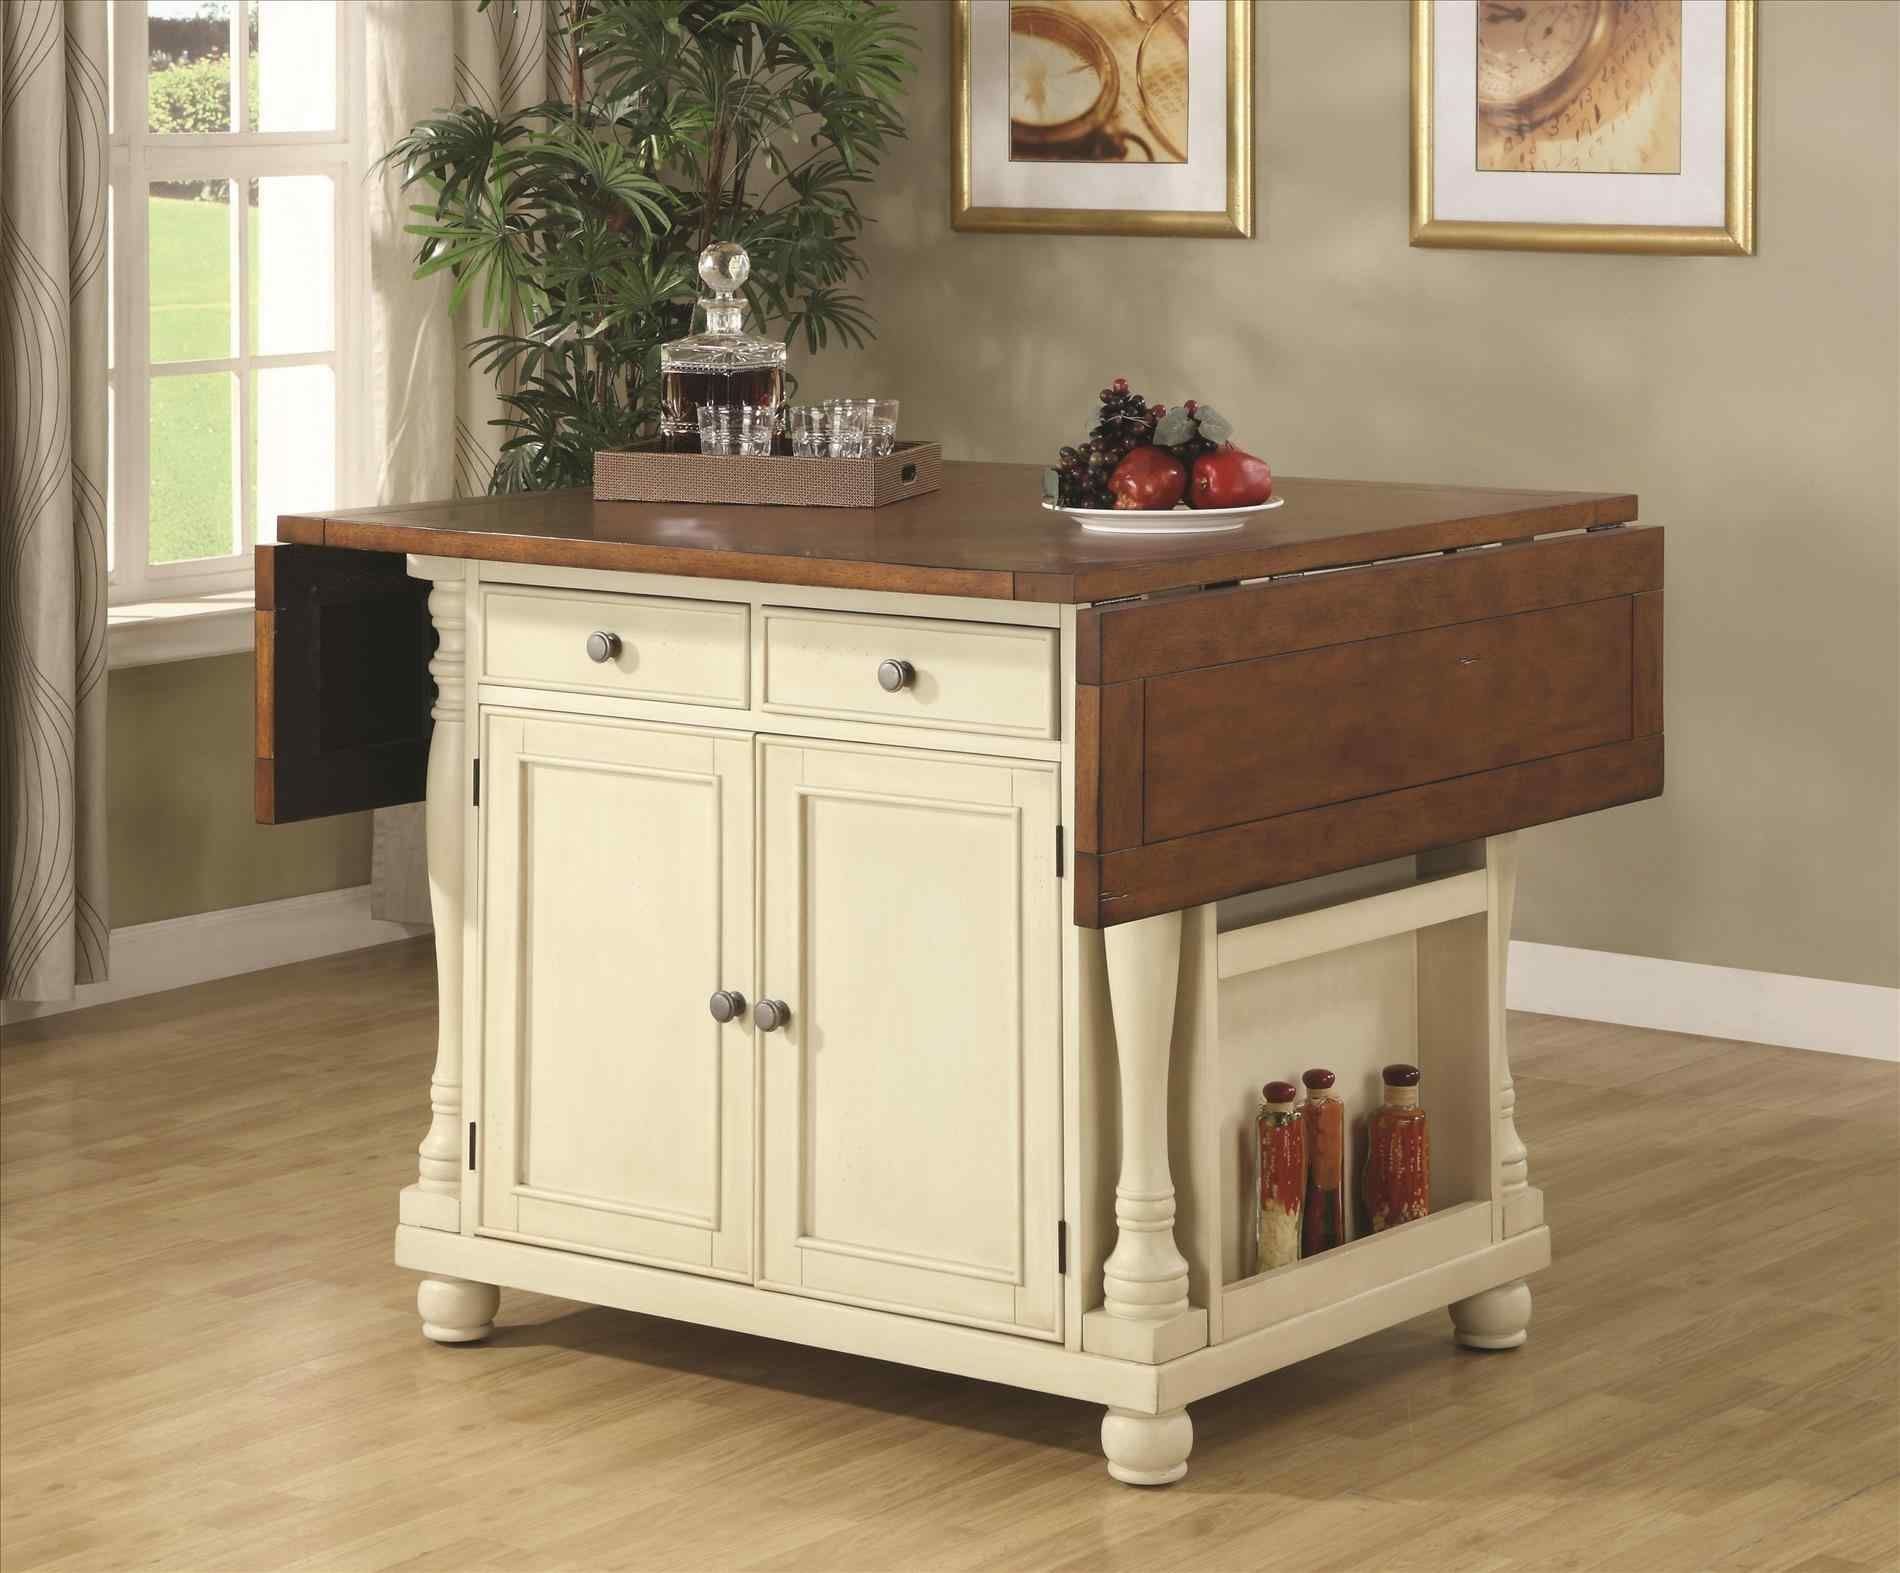 Portable Kitchen Island Bench New Movable Kitchen Island Bench At Hoangphaphaingoai Info